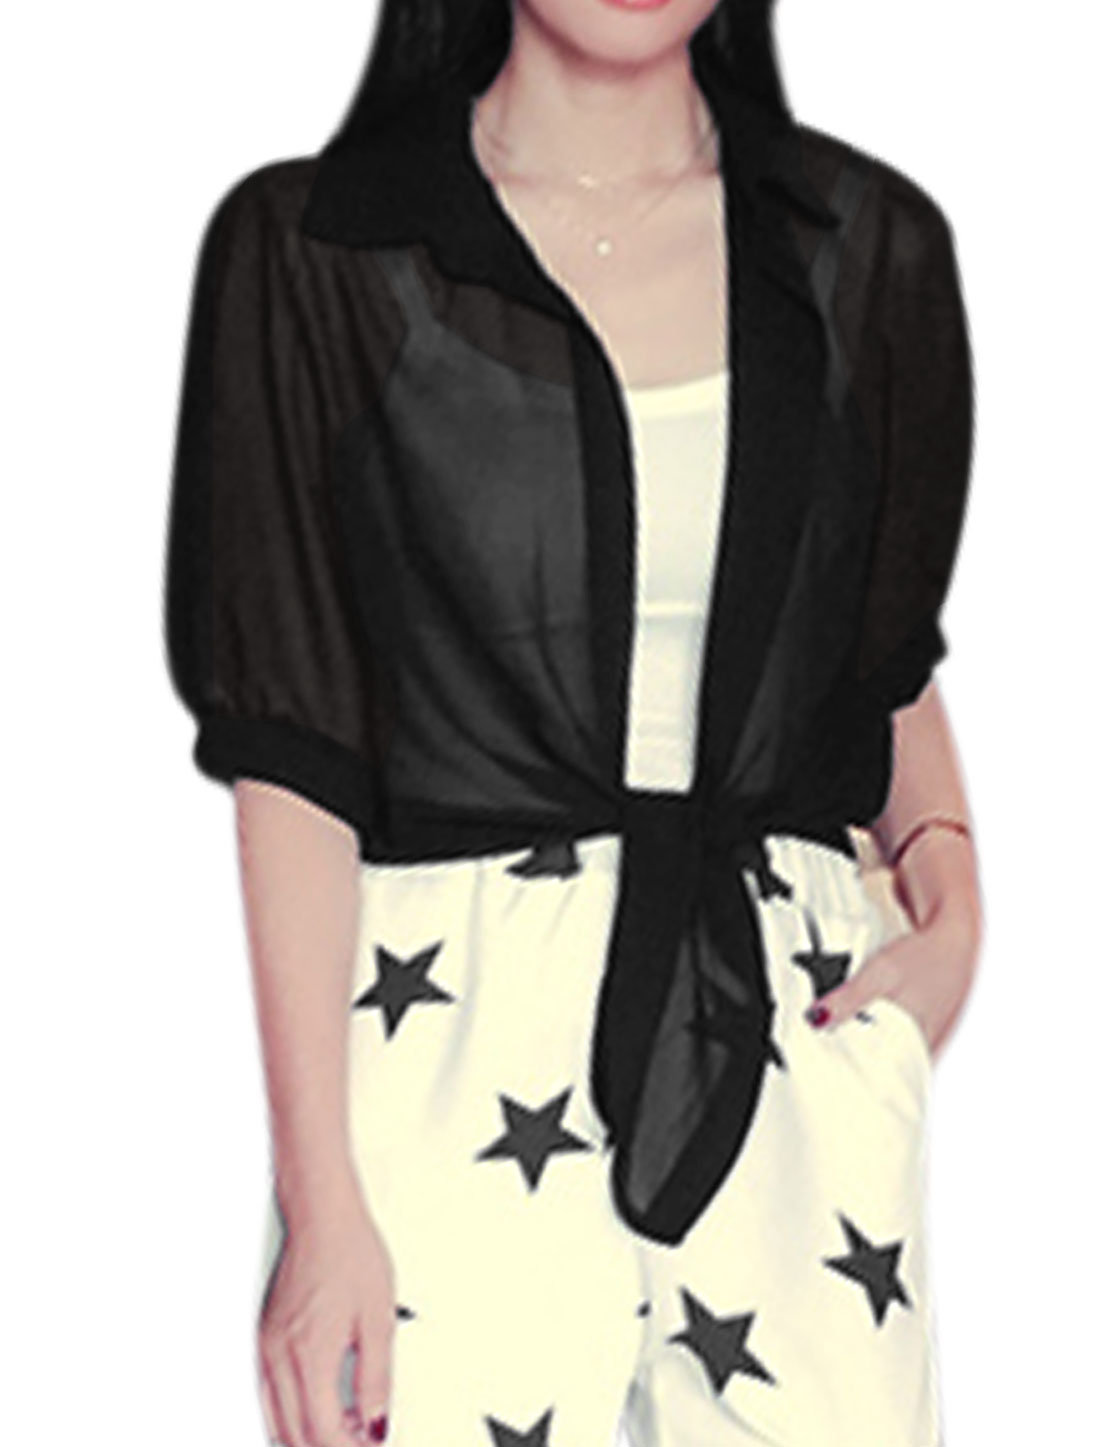 Ladies Elbow Sleeves Buttonless Self Tie Waist Chiffon Cardigan Black XS